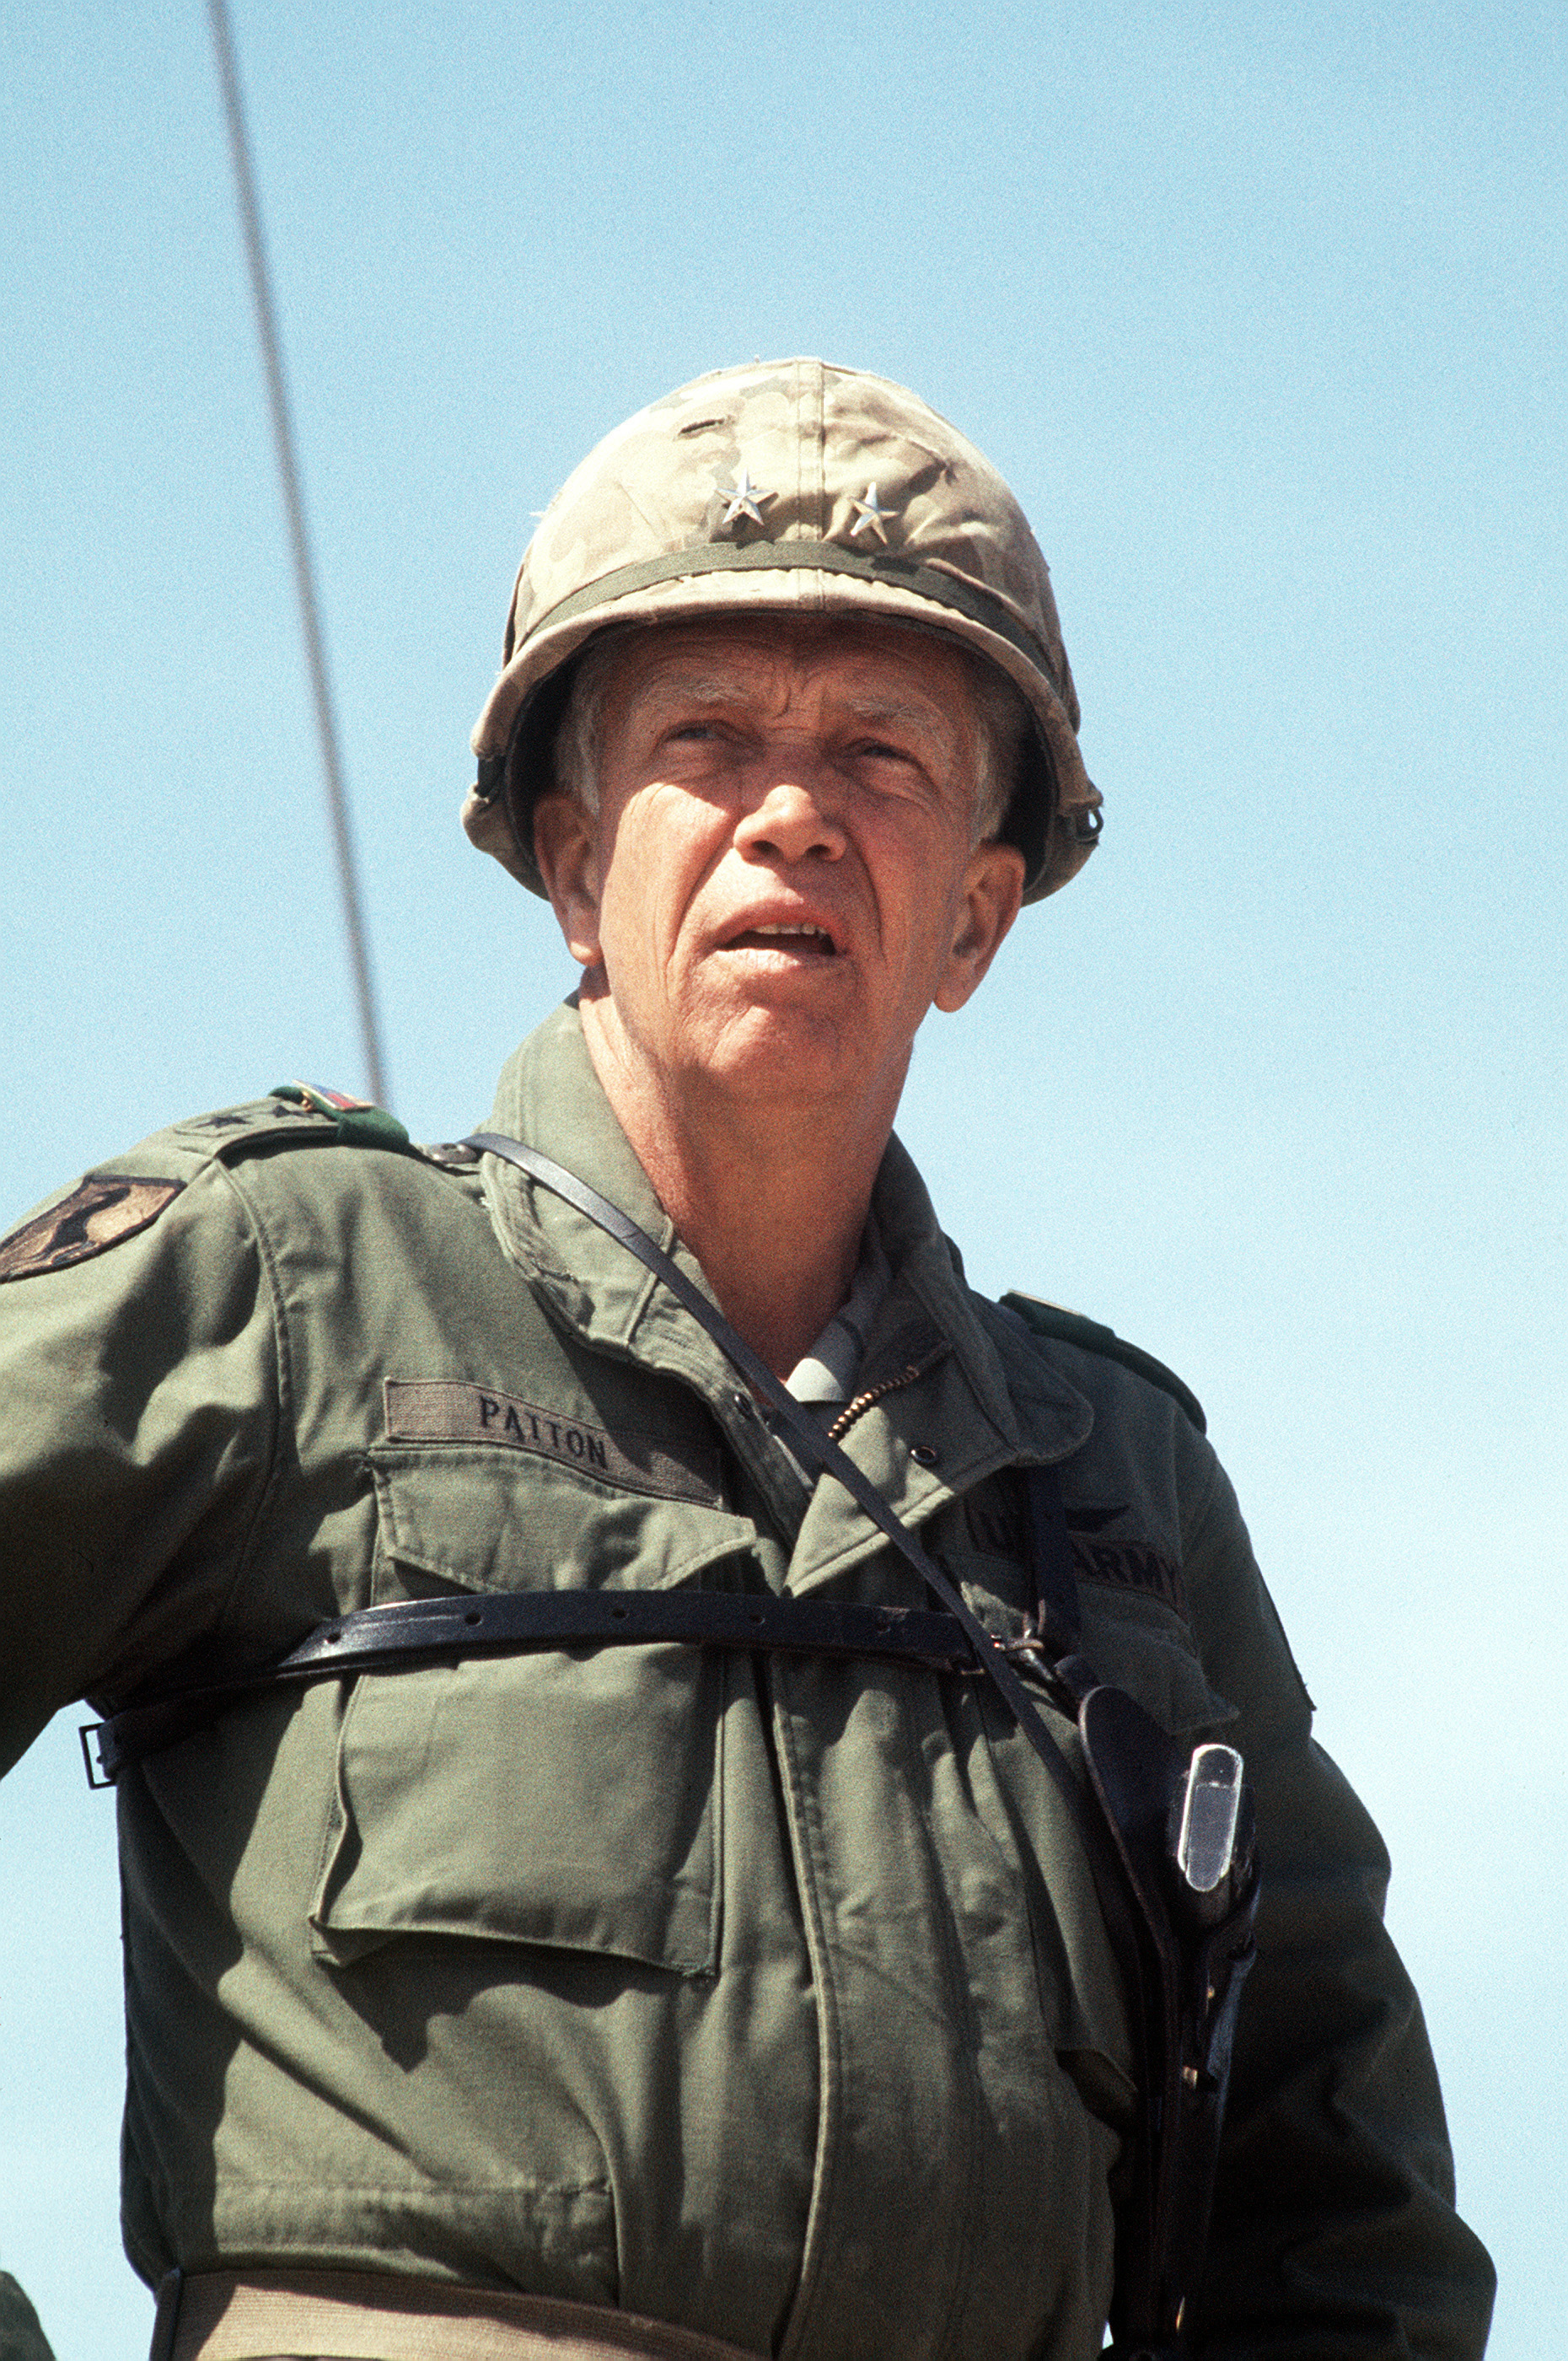 File:George Patton IV DF-ST-84-01686.JPEG - Wikipedia, the free ...